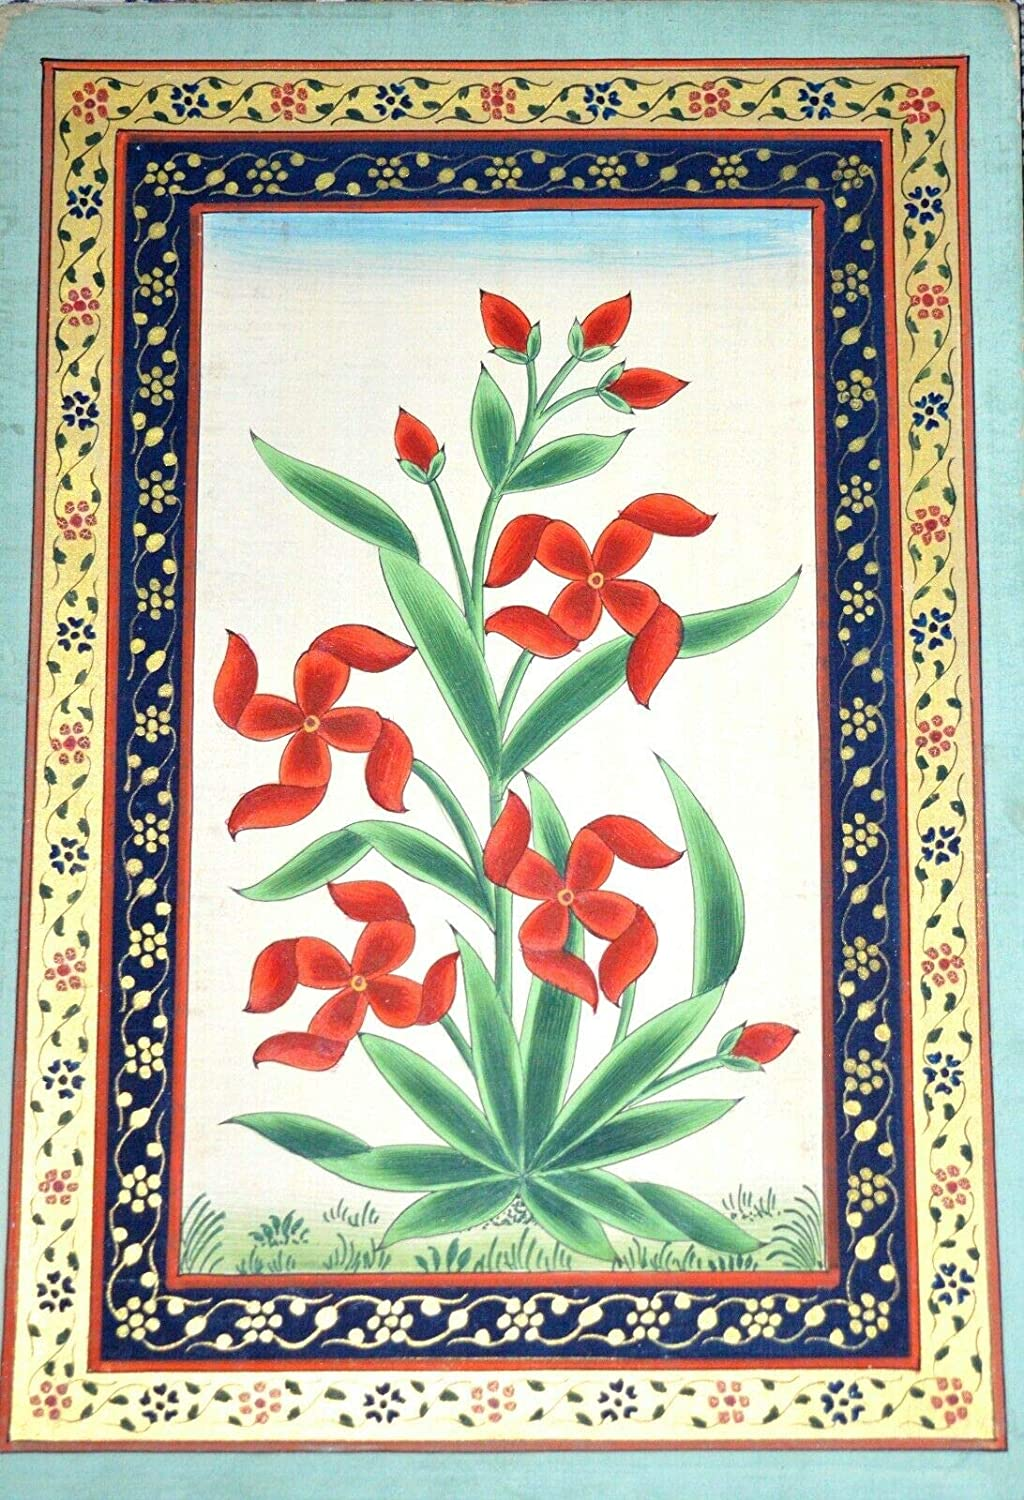 Red Jasmine Flower Handmade Miniature With Albuquerque Mall Painting Gold Philadelphia Mall Color F